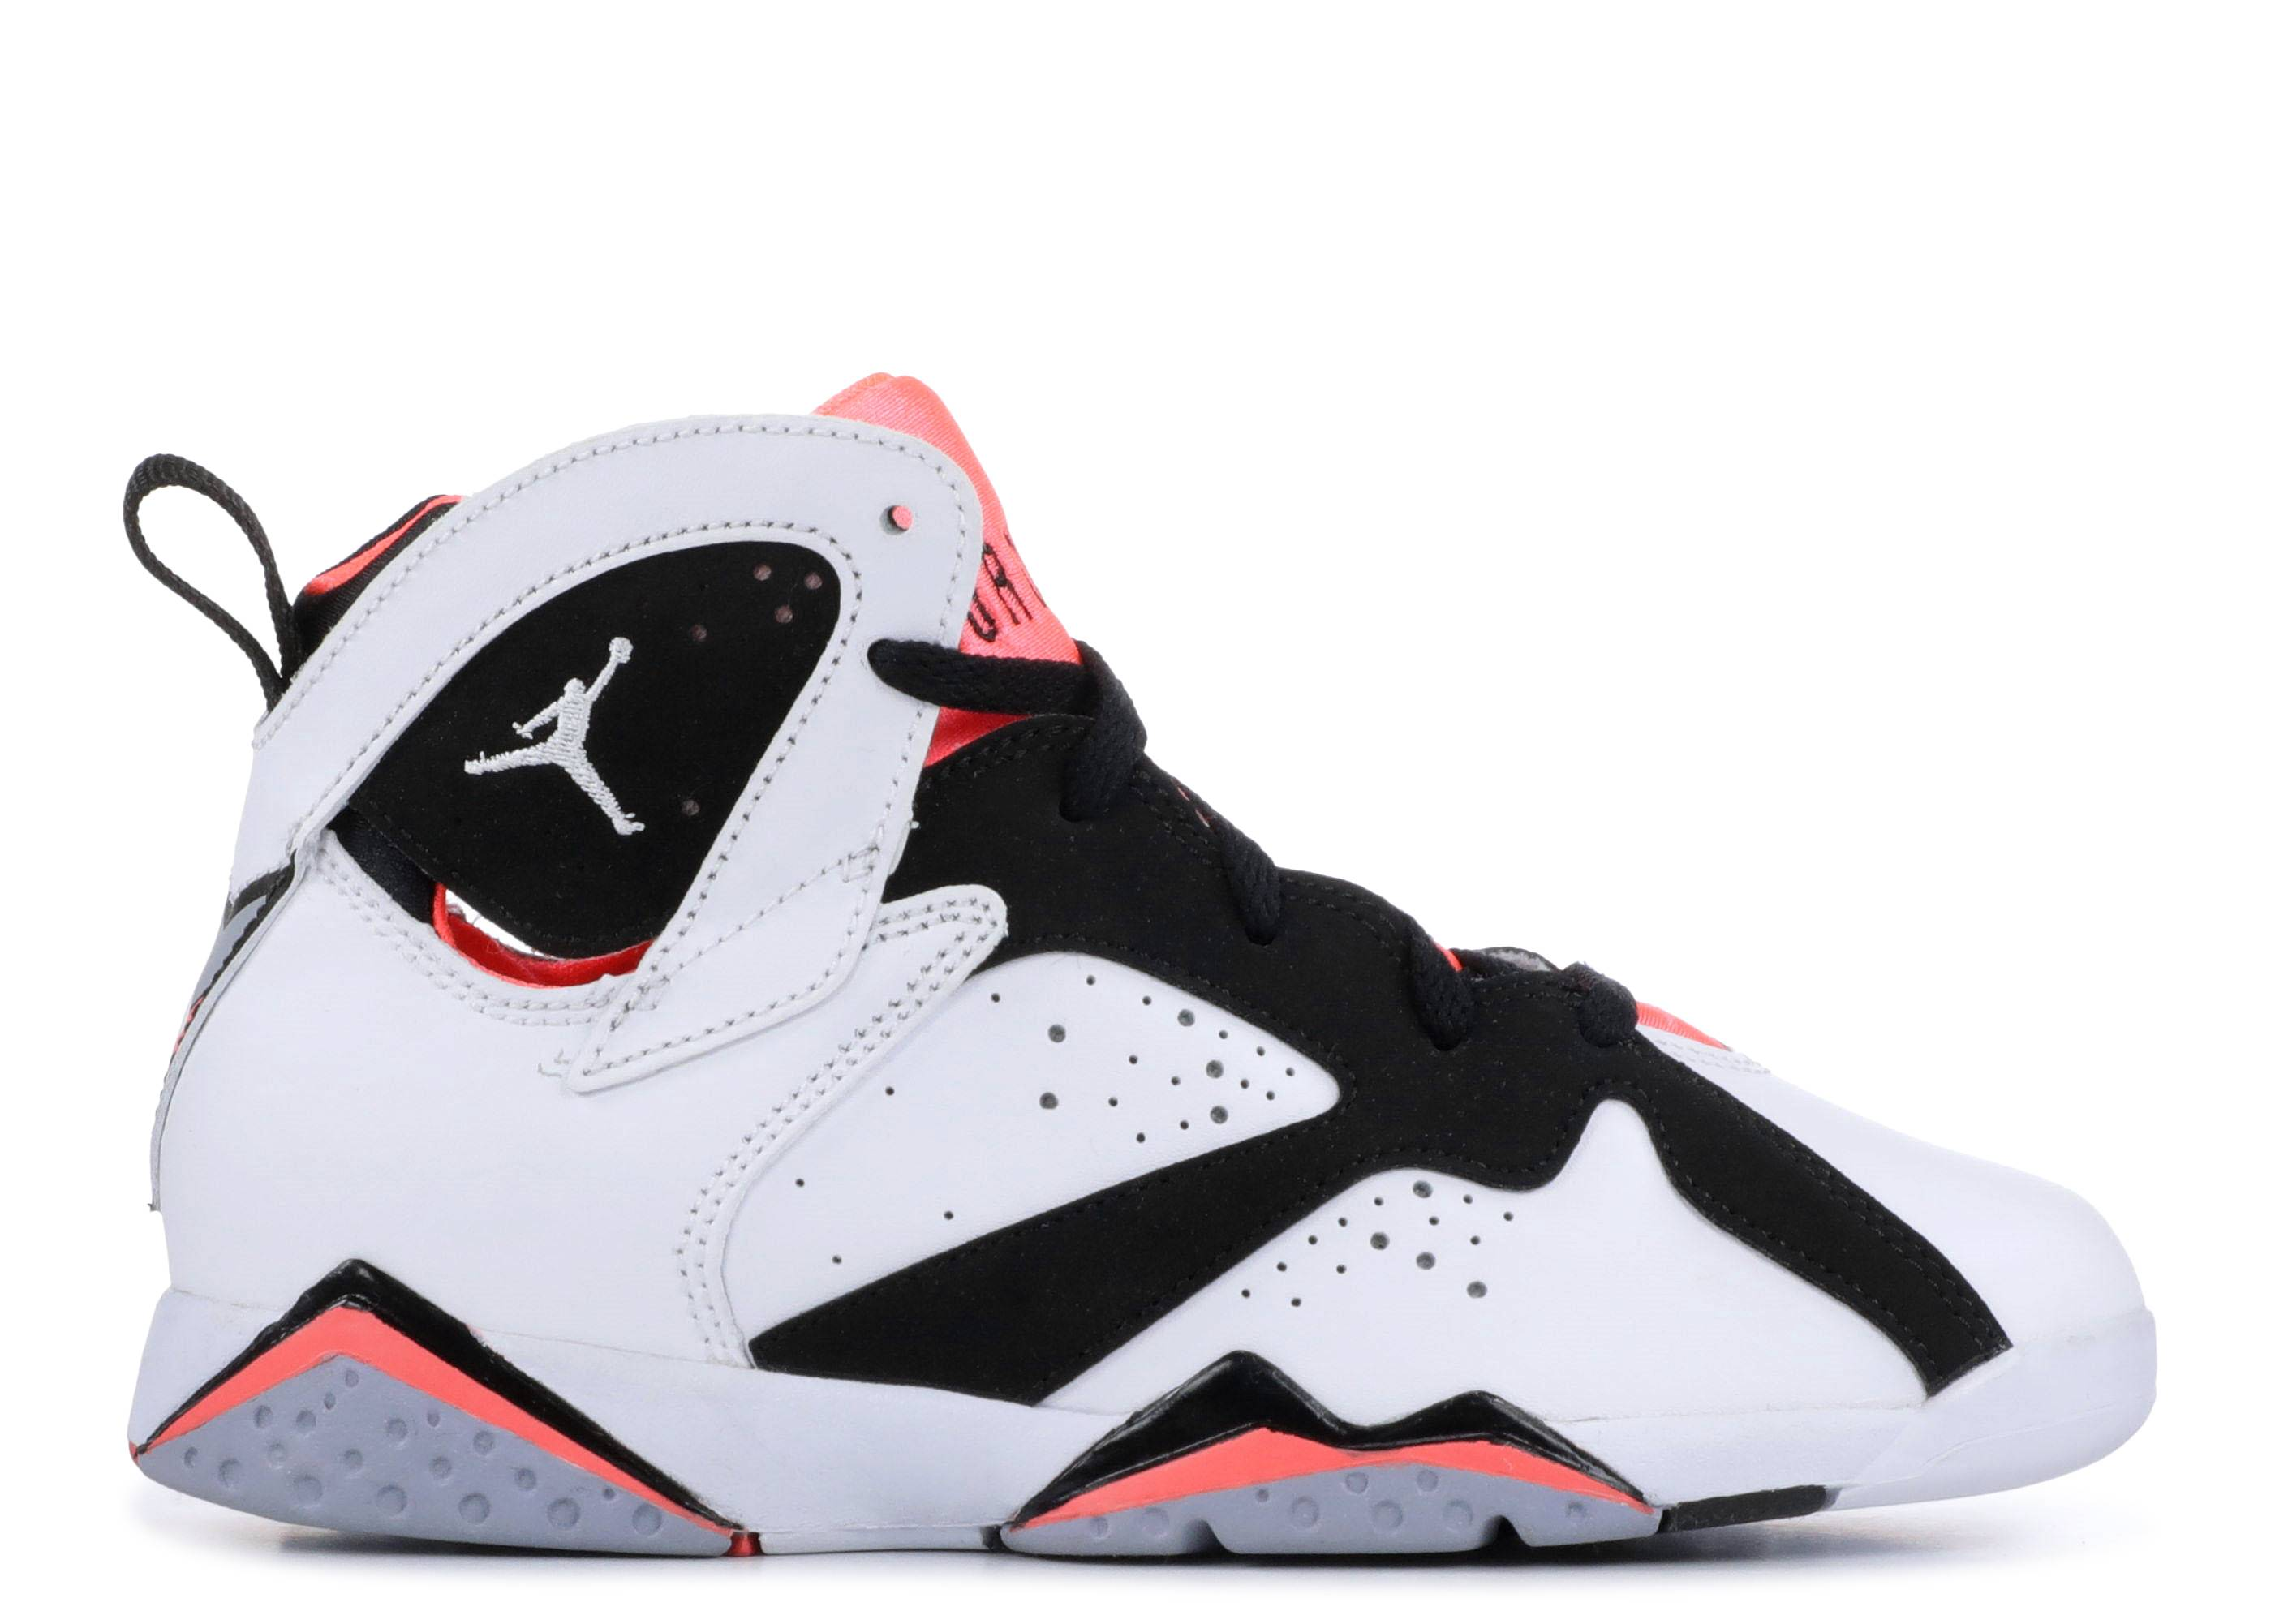 81938cdc740349 Air Jordan 7 (VII) Shoes - Nike